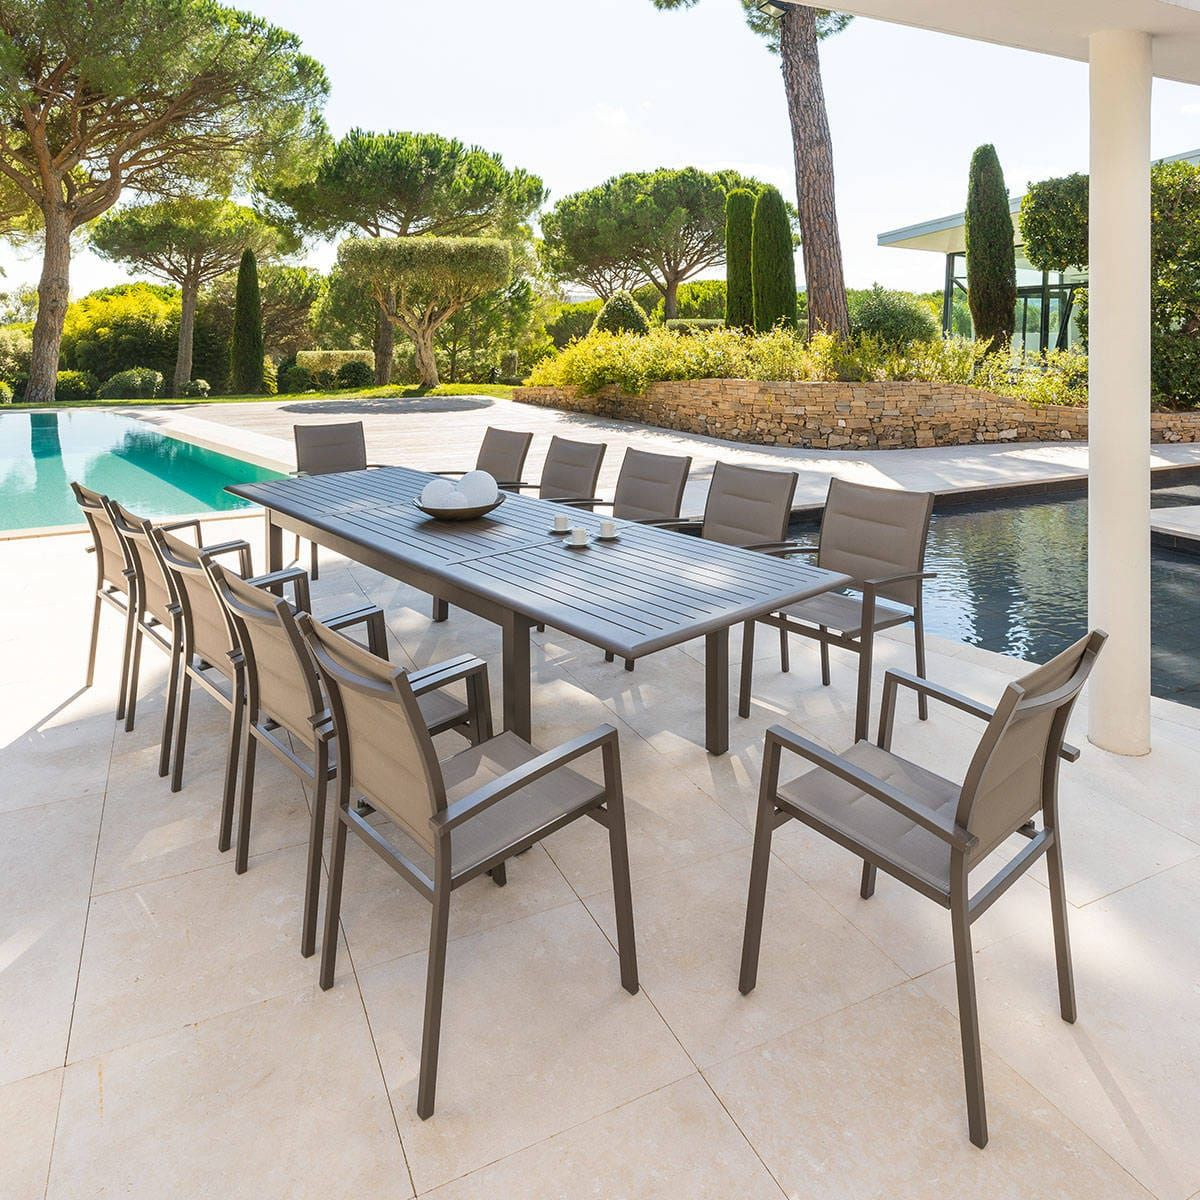 Table de jardin extensible Azua Tonka 12 places - Aluminium ...